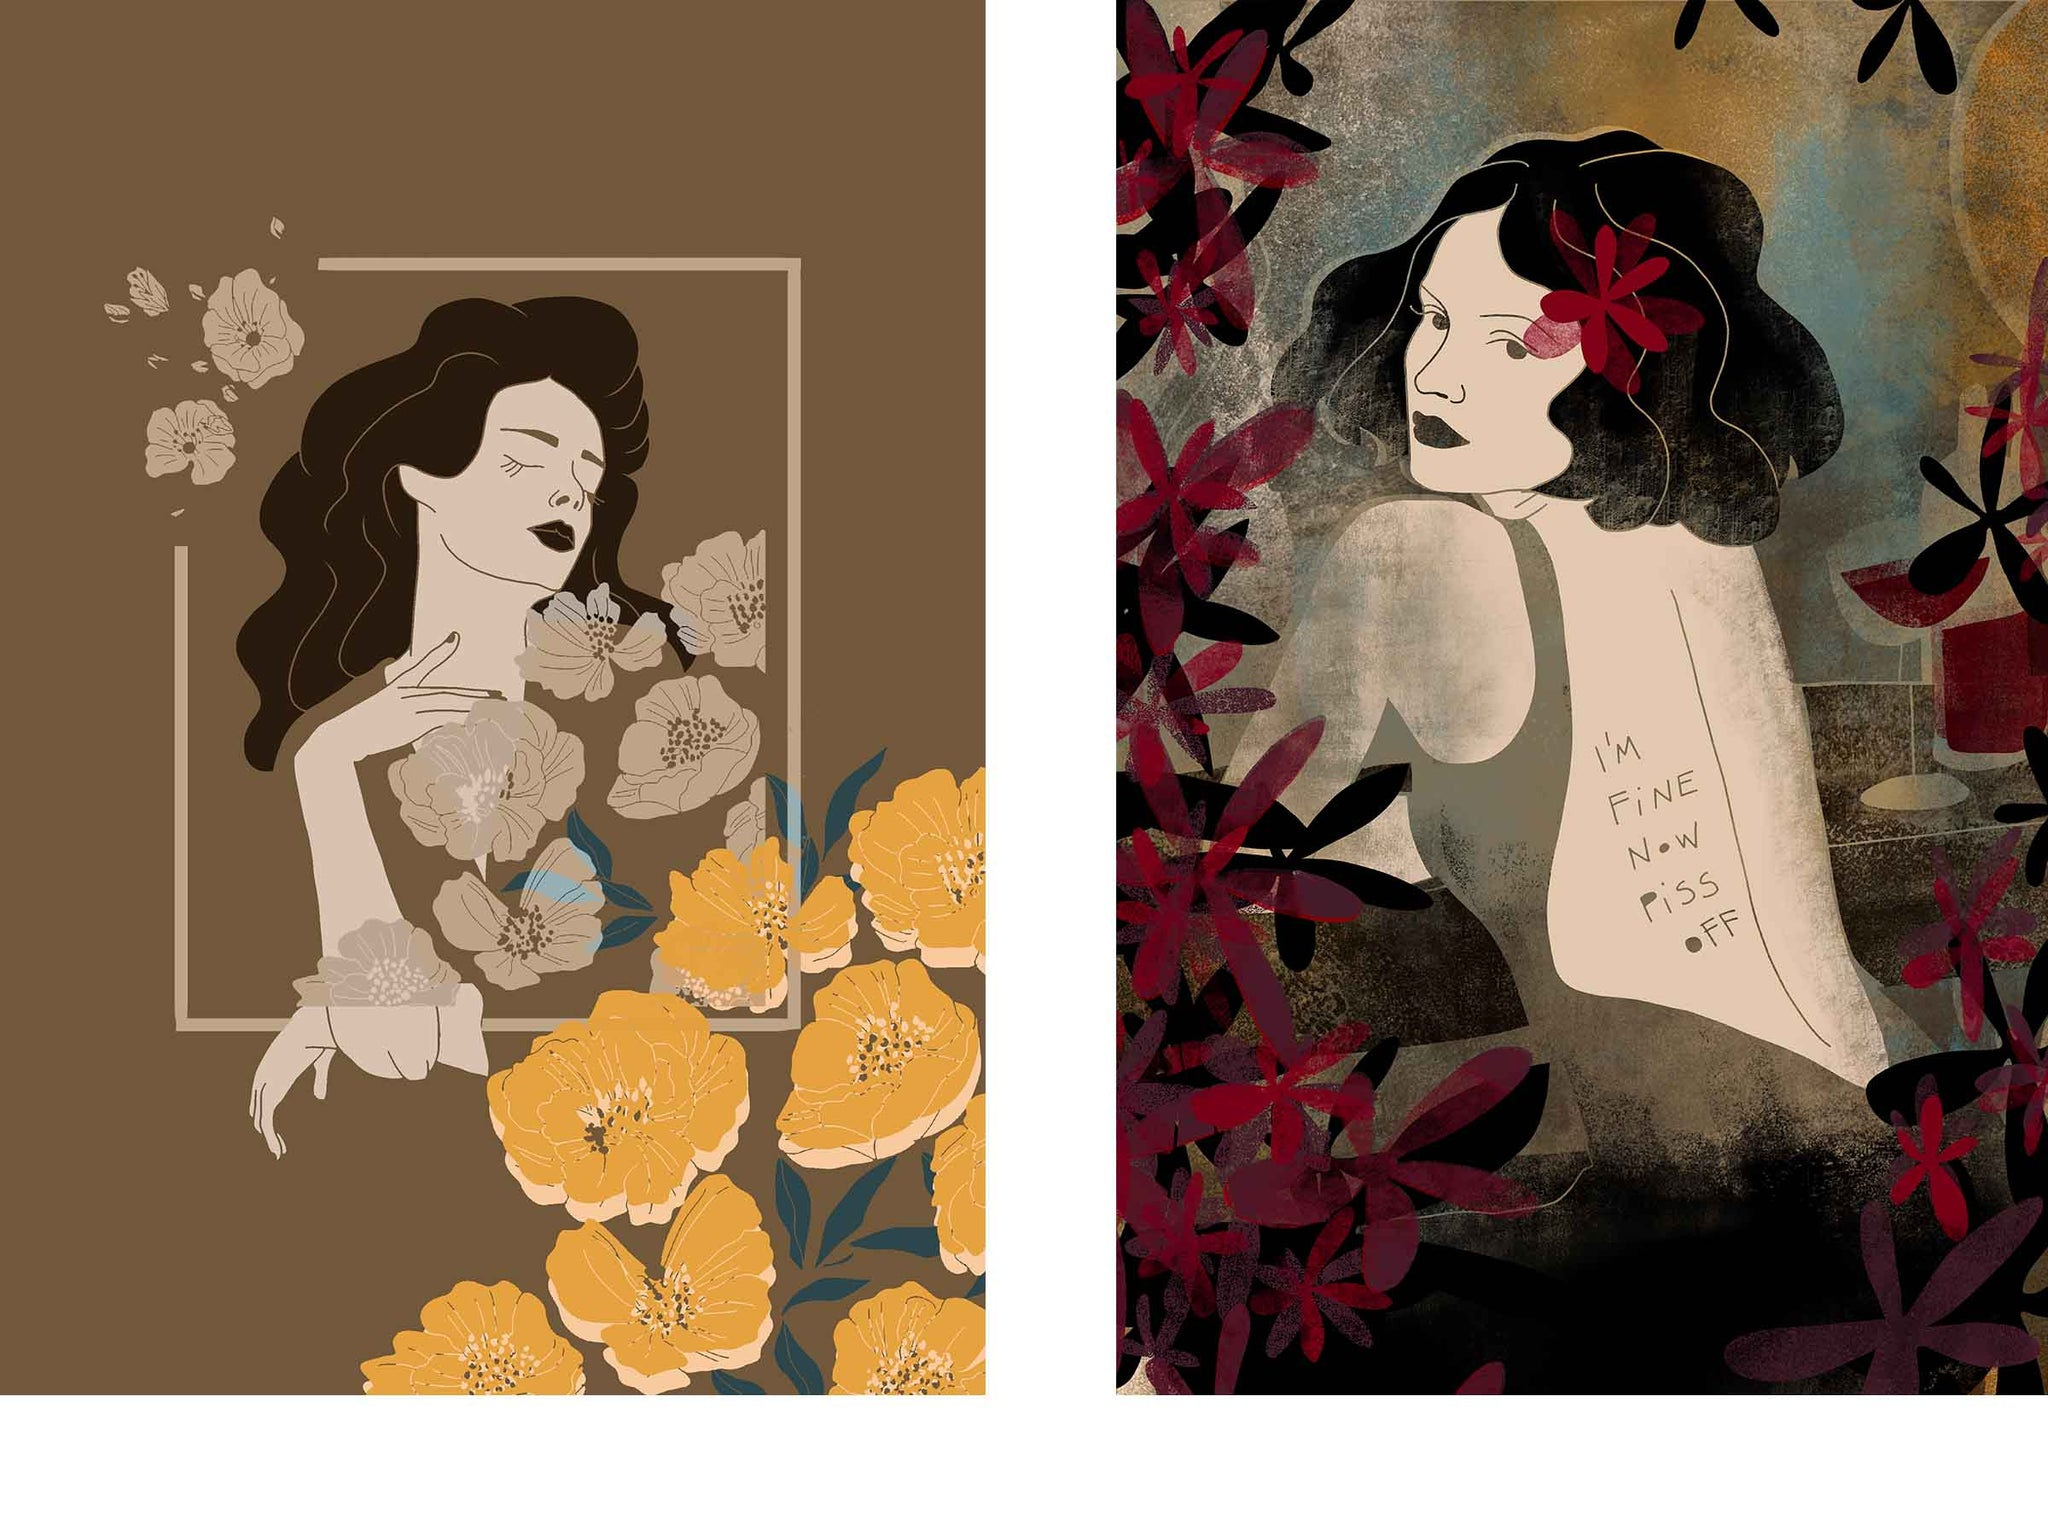 """two separate stylized illustrated female portraits, both surrounded with flowers, the on on the right has a tattoo on her back that says: """"I'm fine, now piss off!"""""""